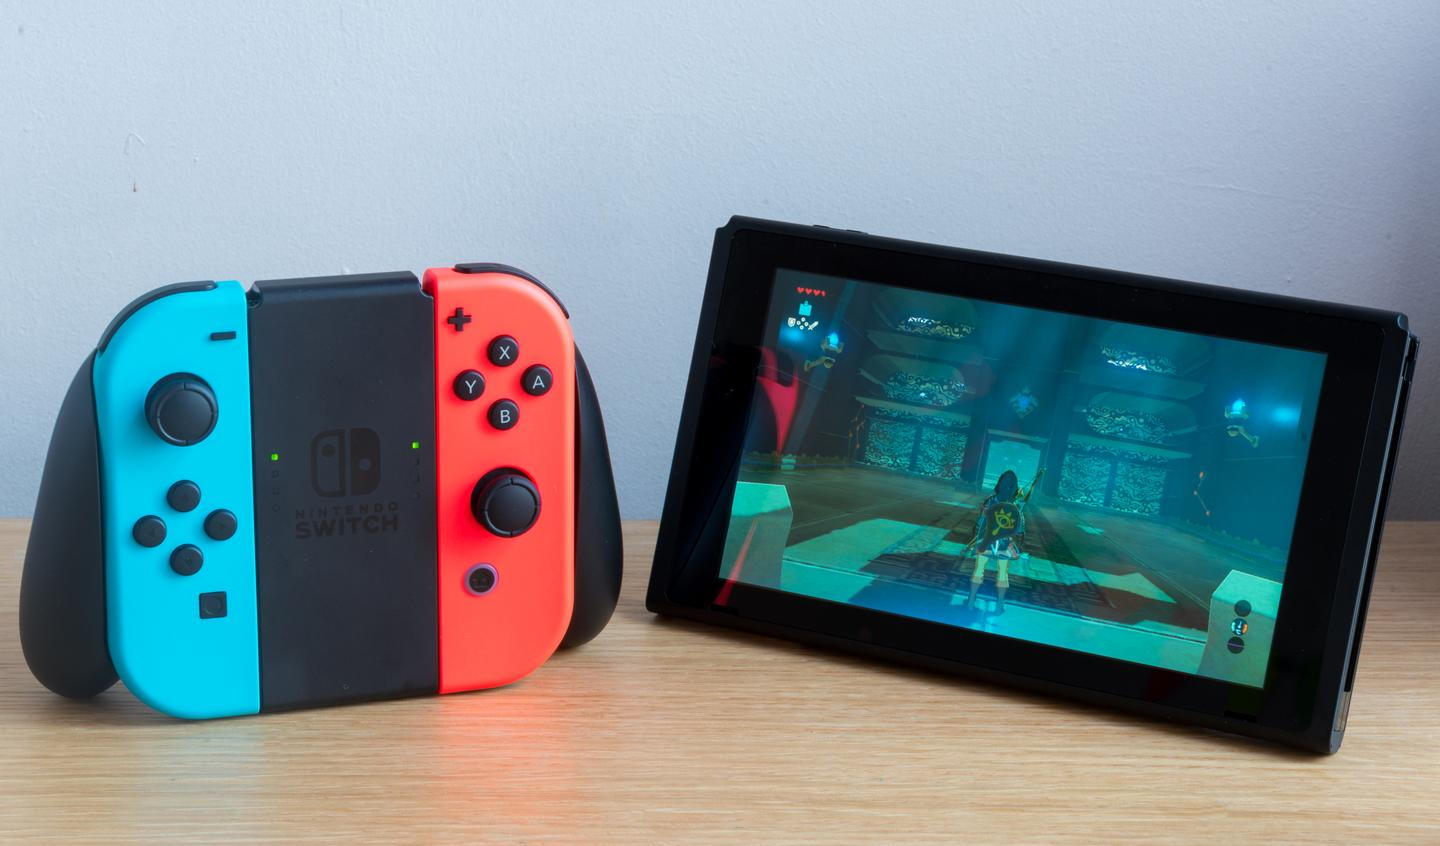 Everything you need to get started with the Switch (except for games) is included in one $300 purchase